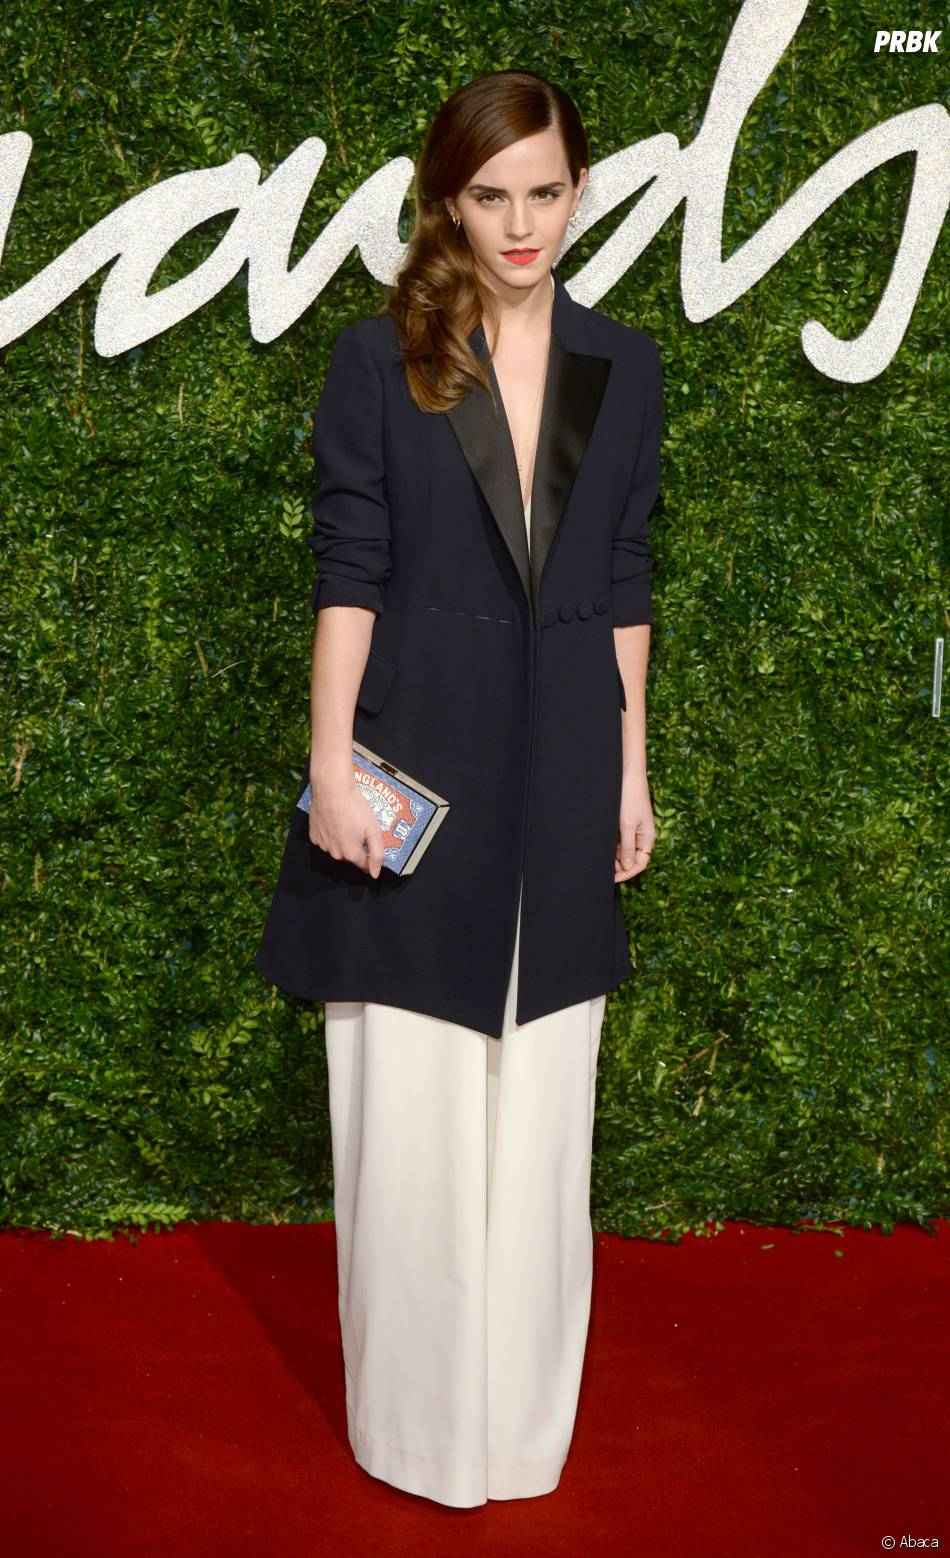 Emma Watson aux British Fashion Awards 2014, le 1er décembre 2014 à Londres